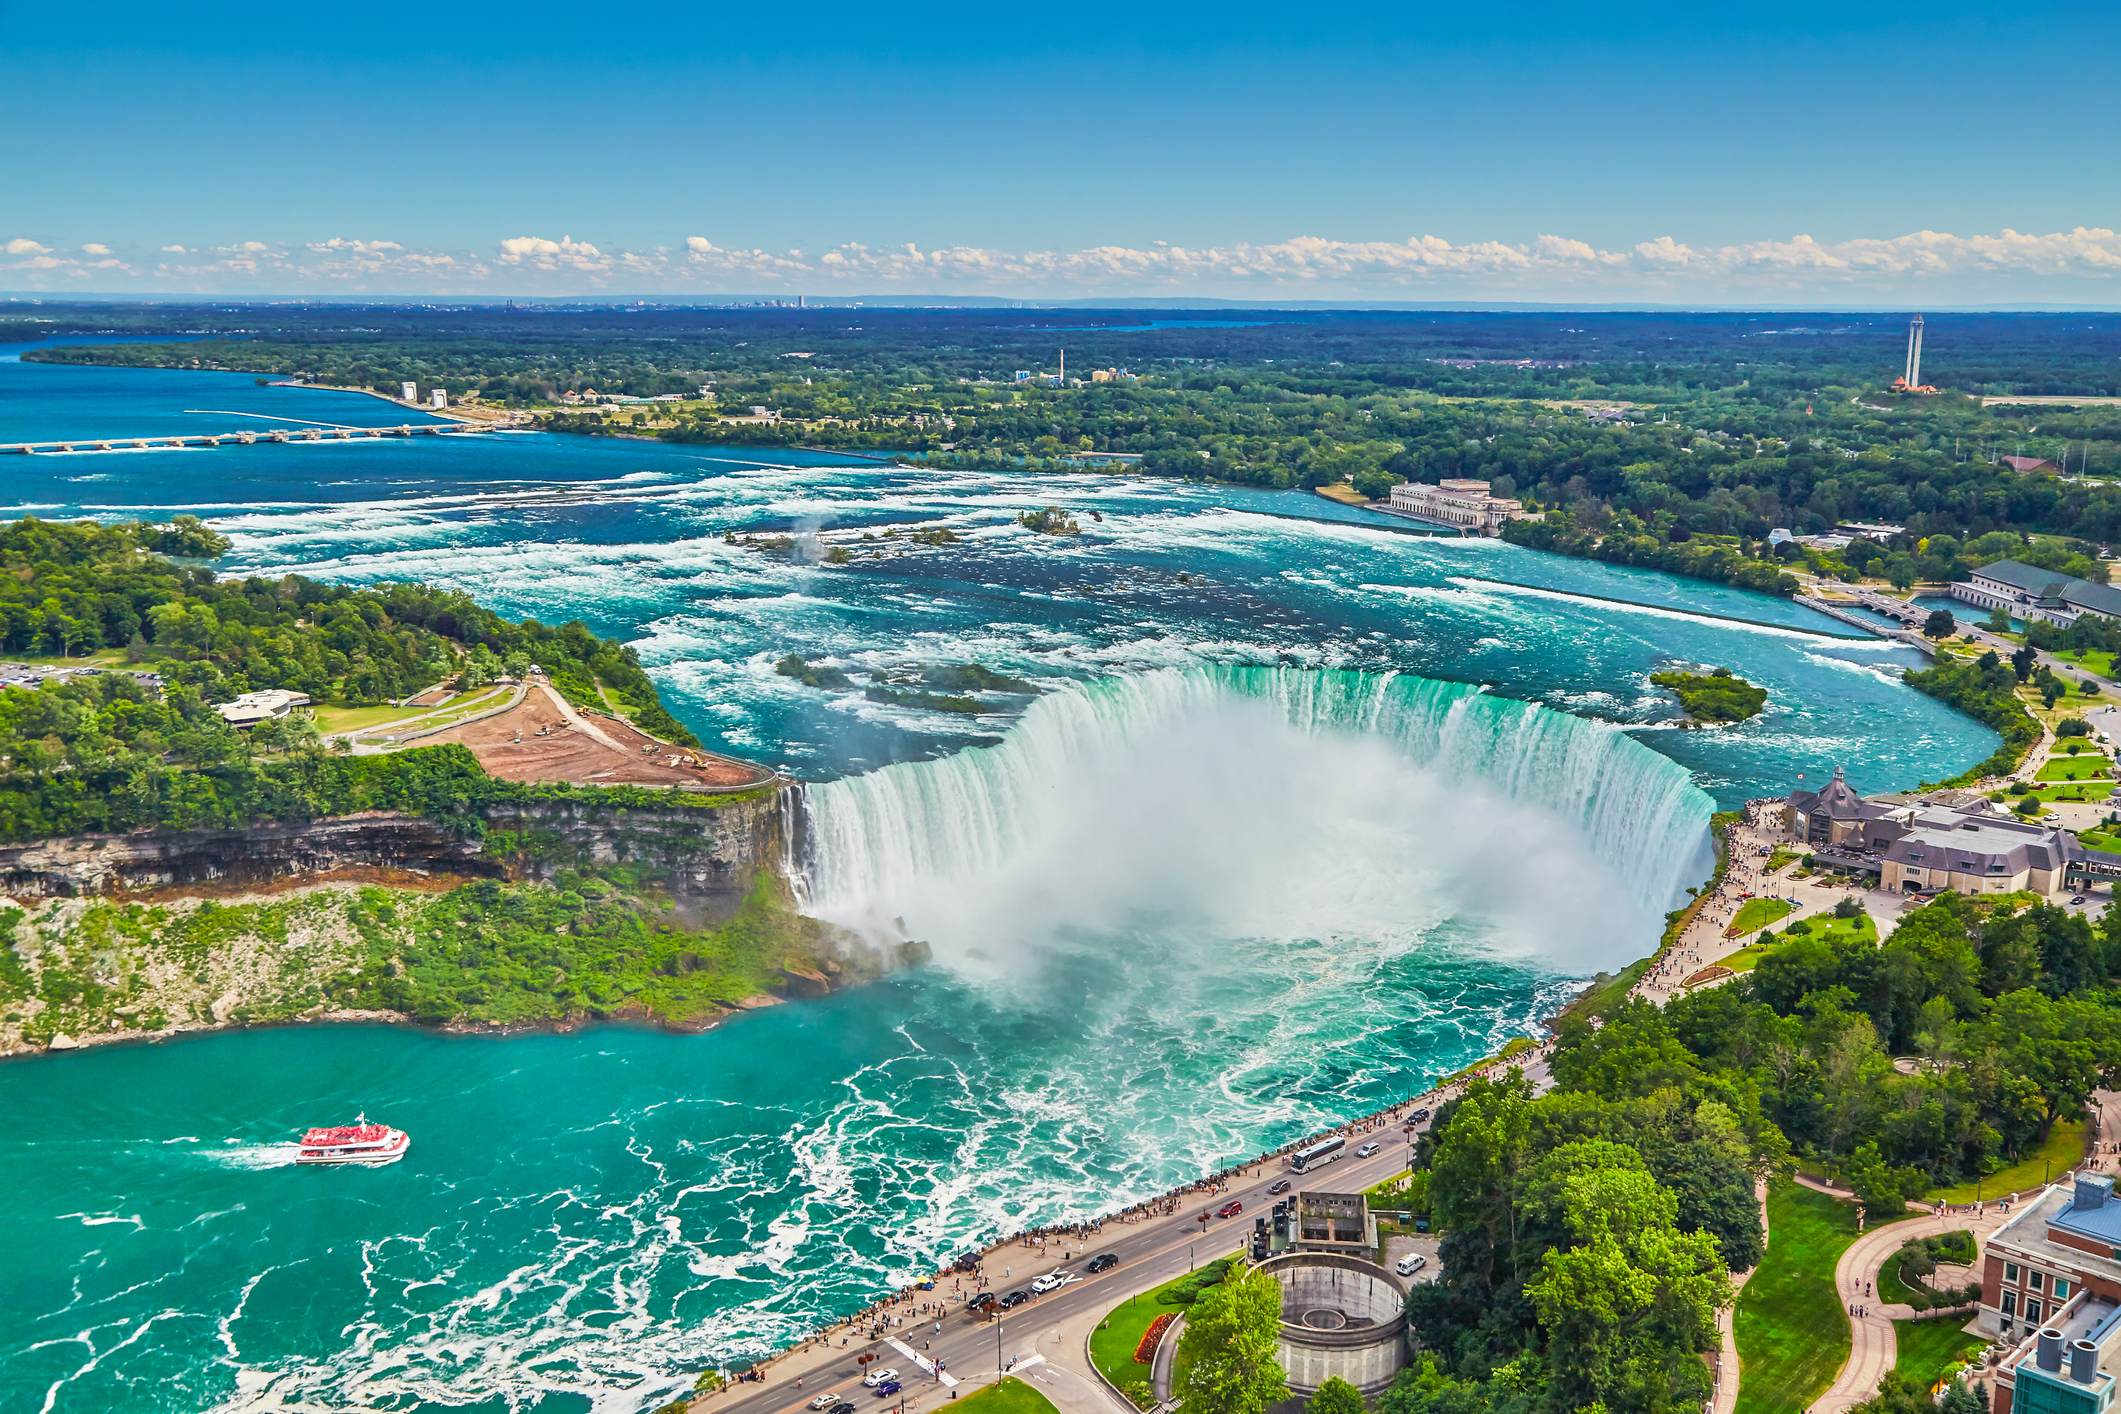 Niagara Falls (New York)